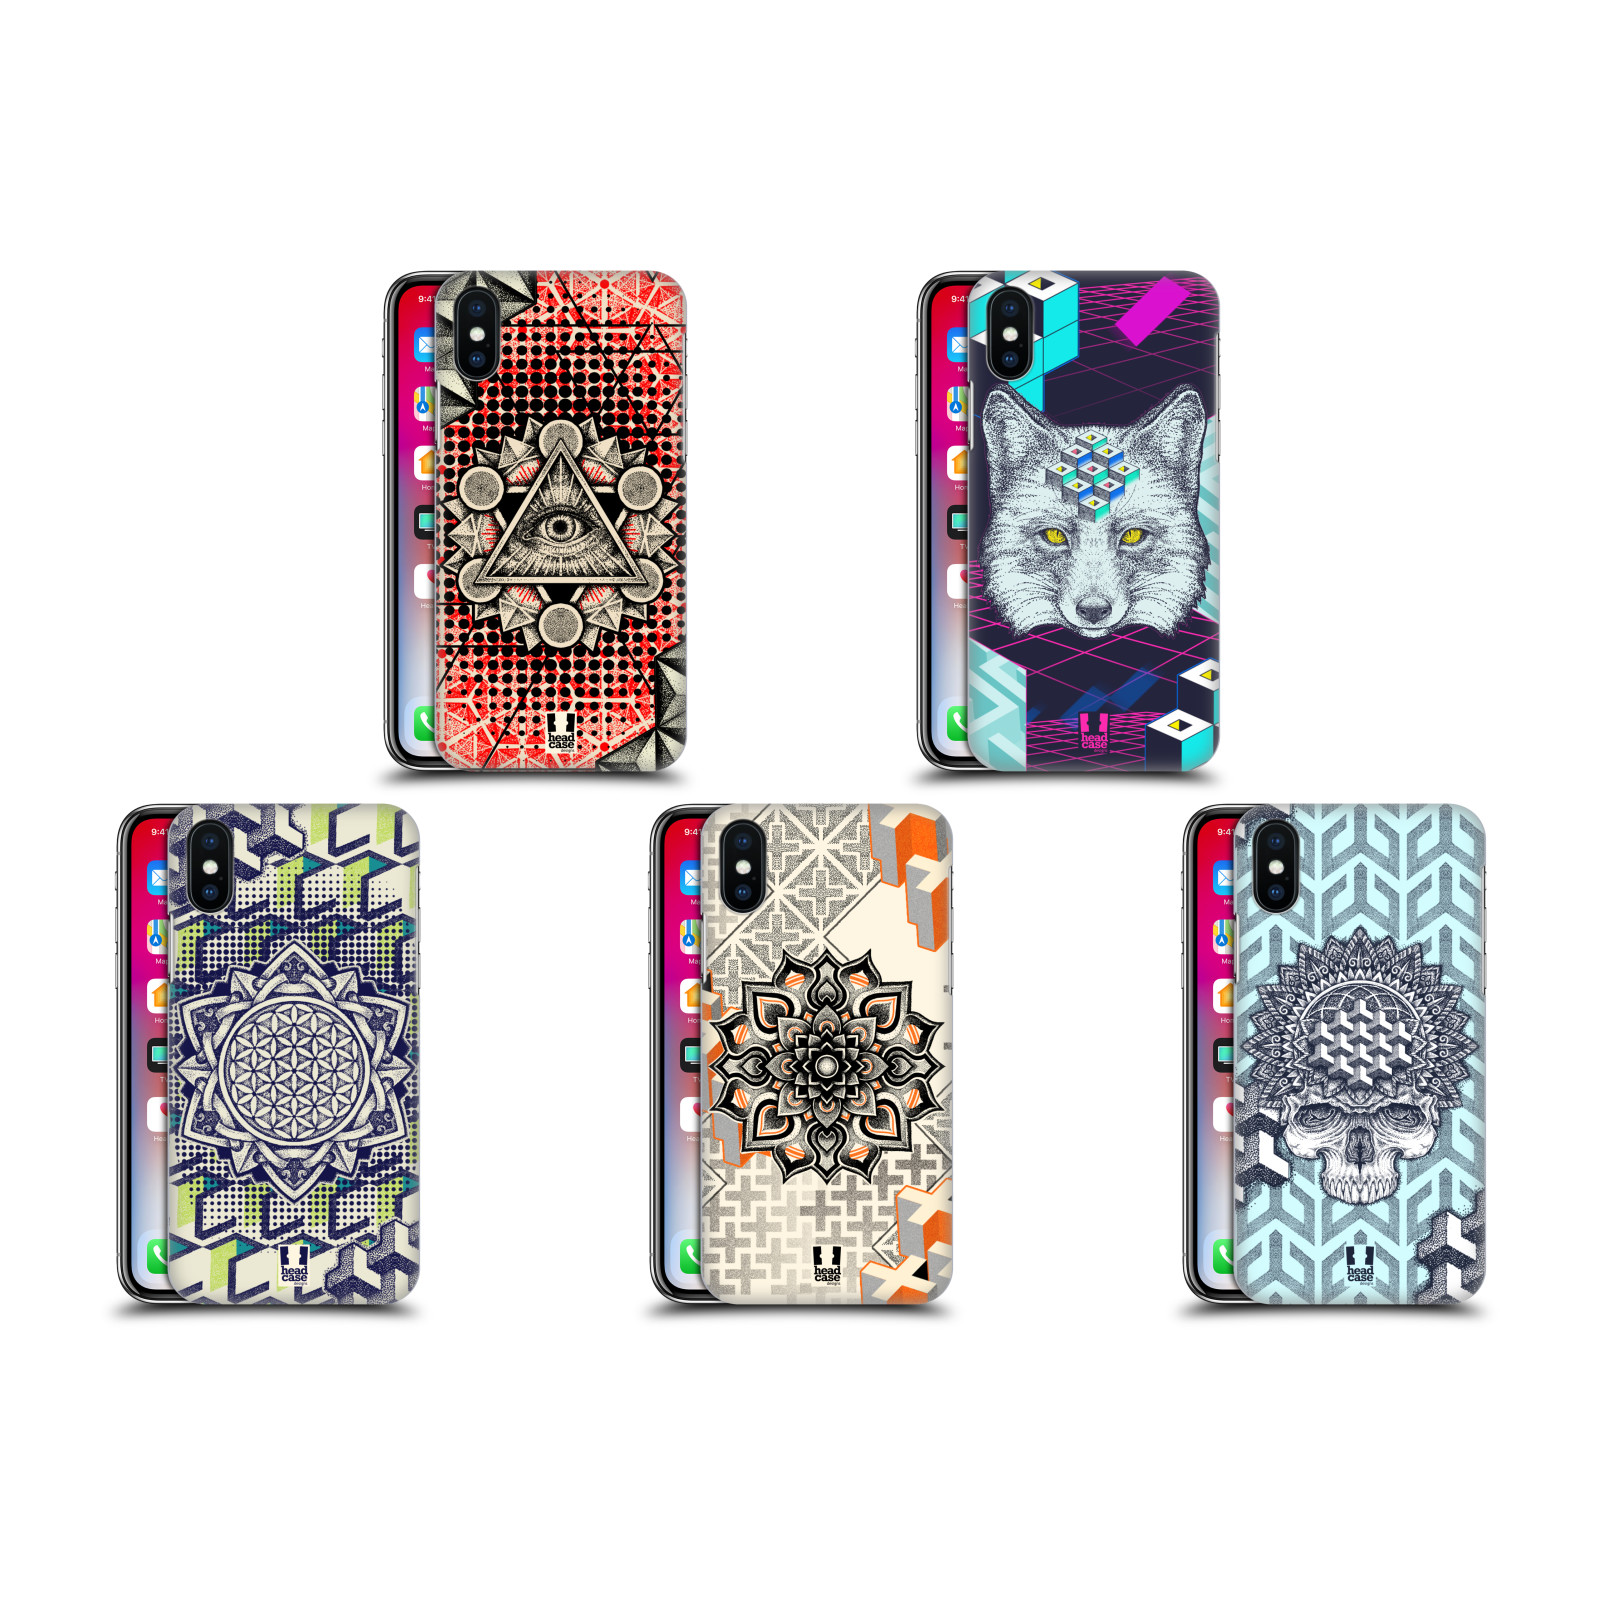 Ultra-Protective Stippled-Design Case